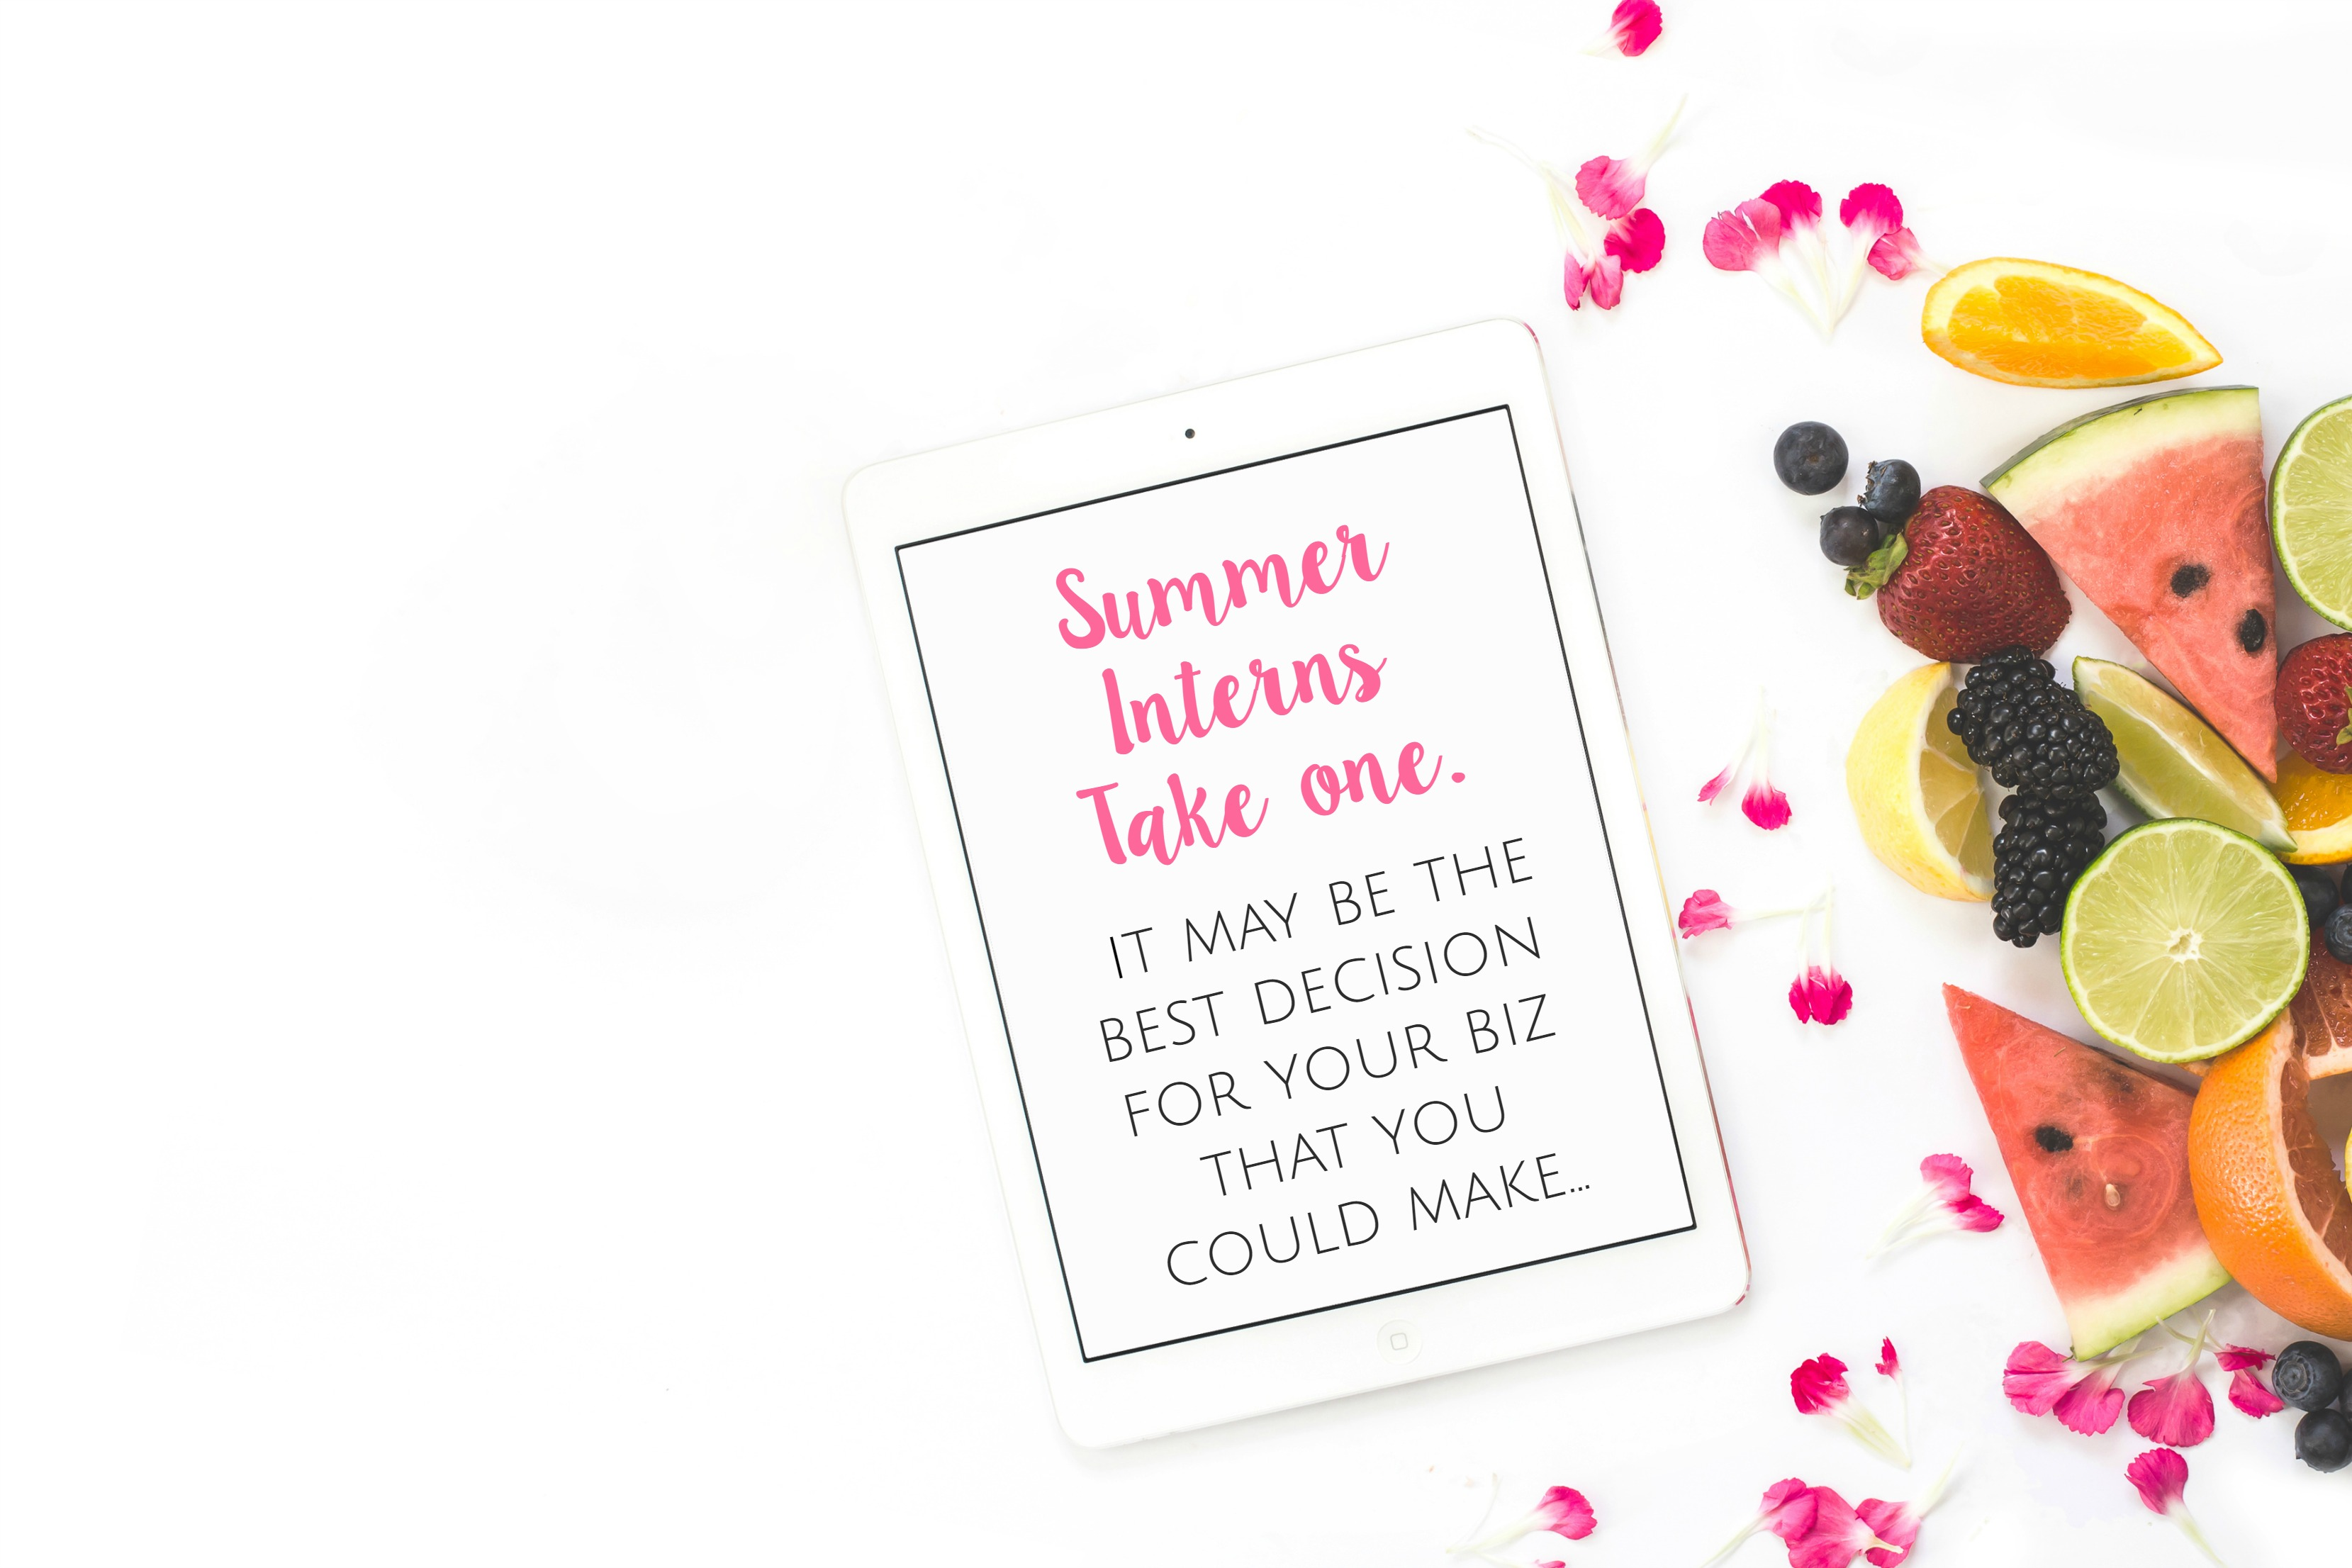 Need help with your never-ending business tasks? Go here to see why you should hire an intern for your blog this summer - you will never look back!